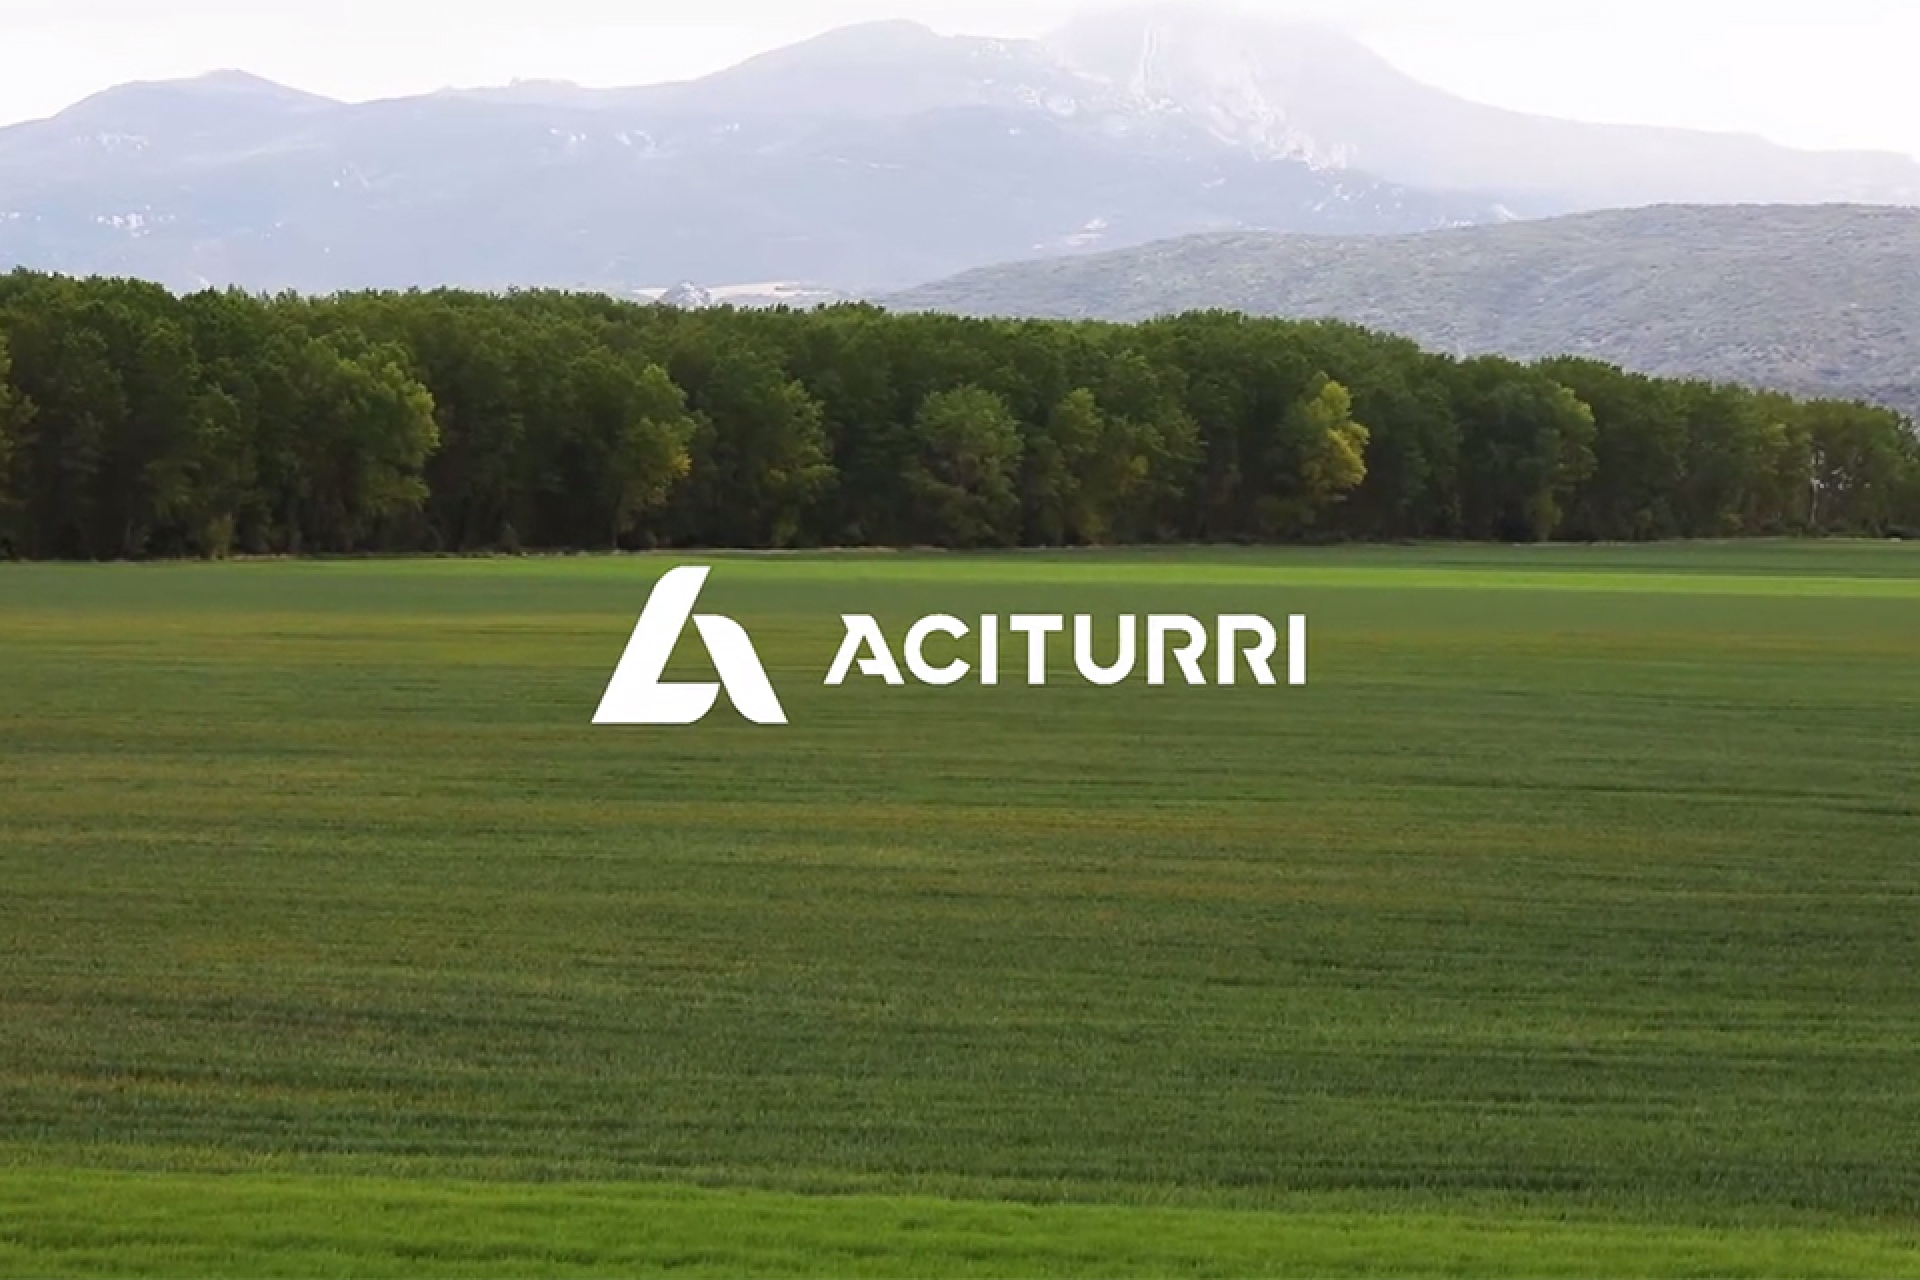 Corporate video for Aciturri